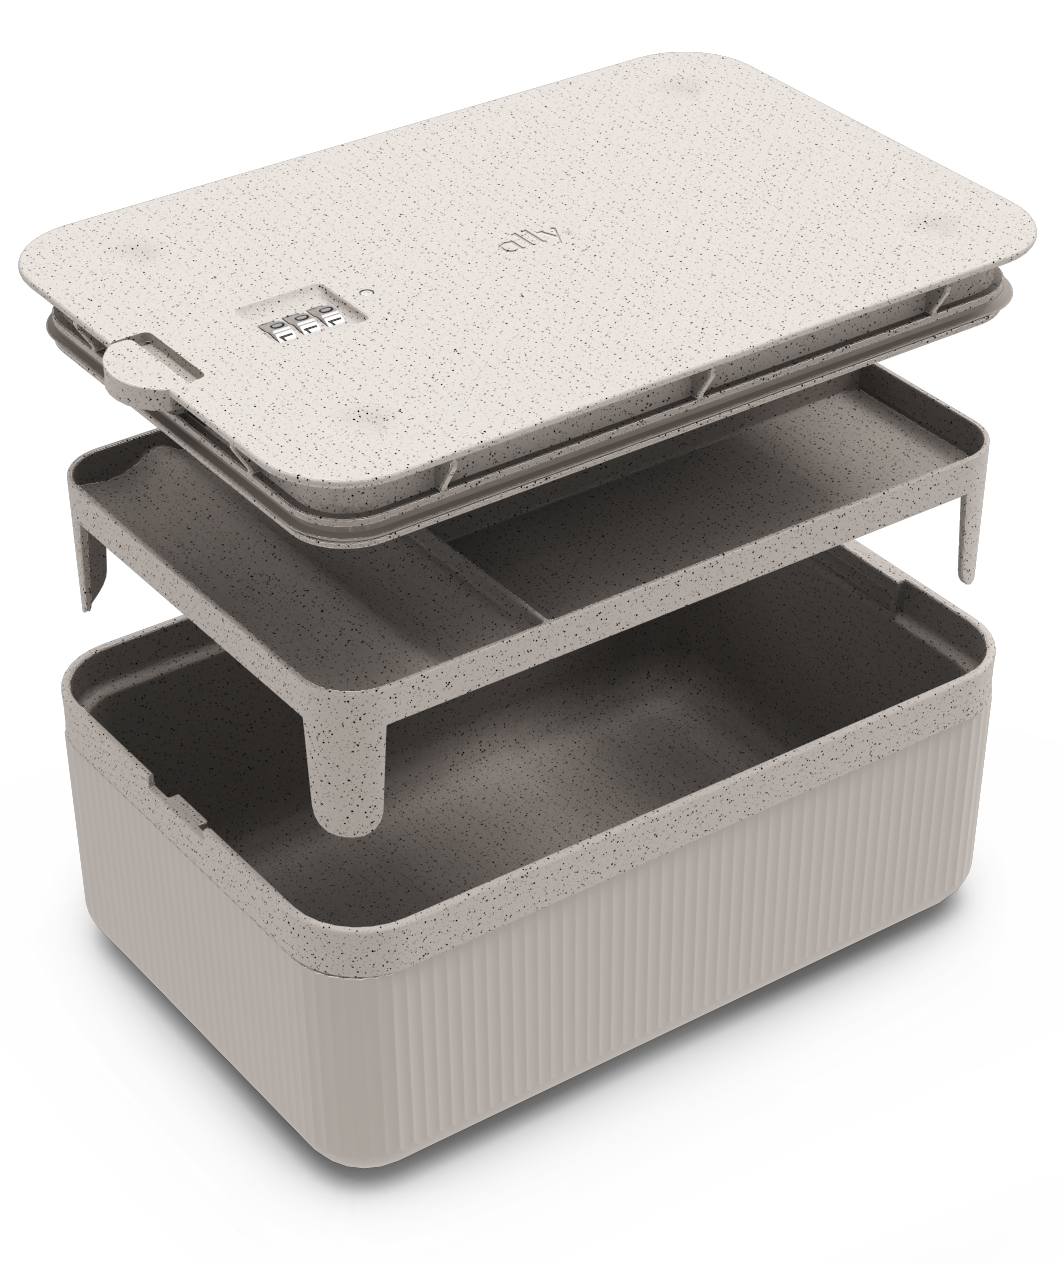 Ally box in cream, completely open to show lid, removable tray and base container